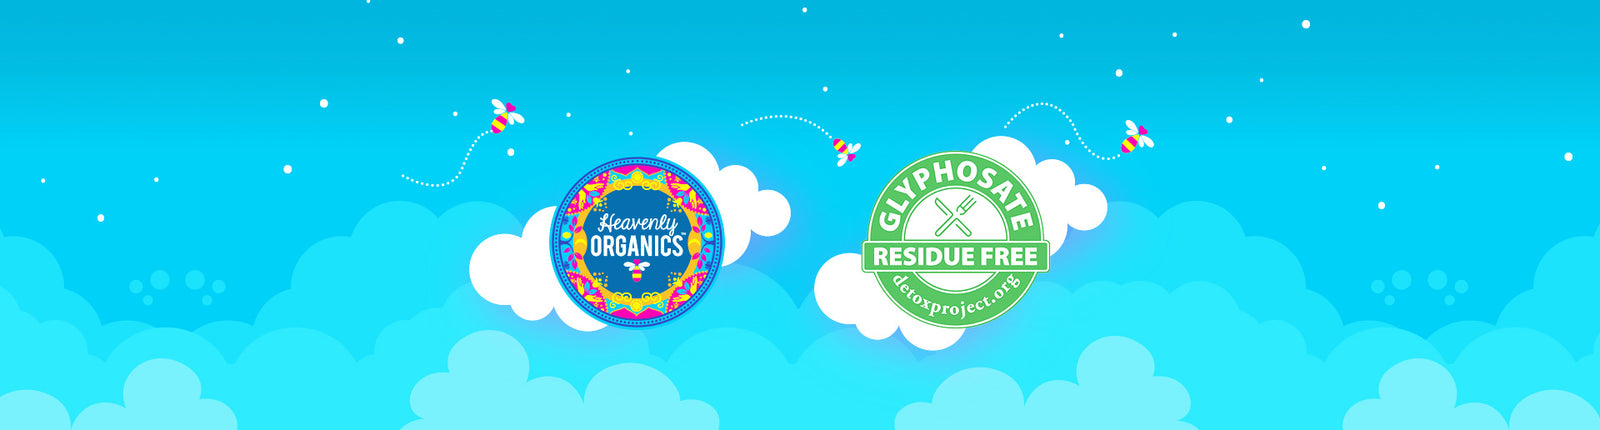 Heavenly Organics is Glyphosate Residue Free Certified!